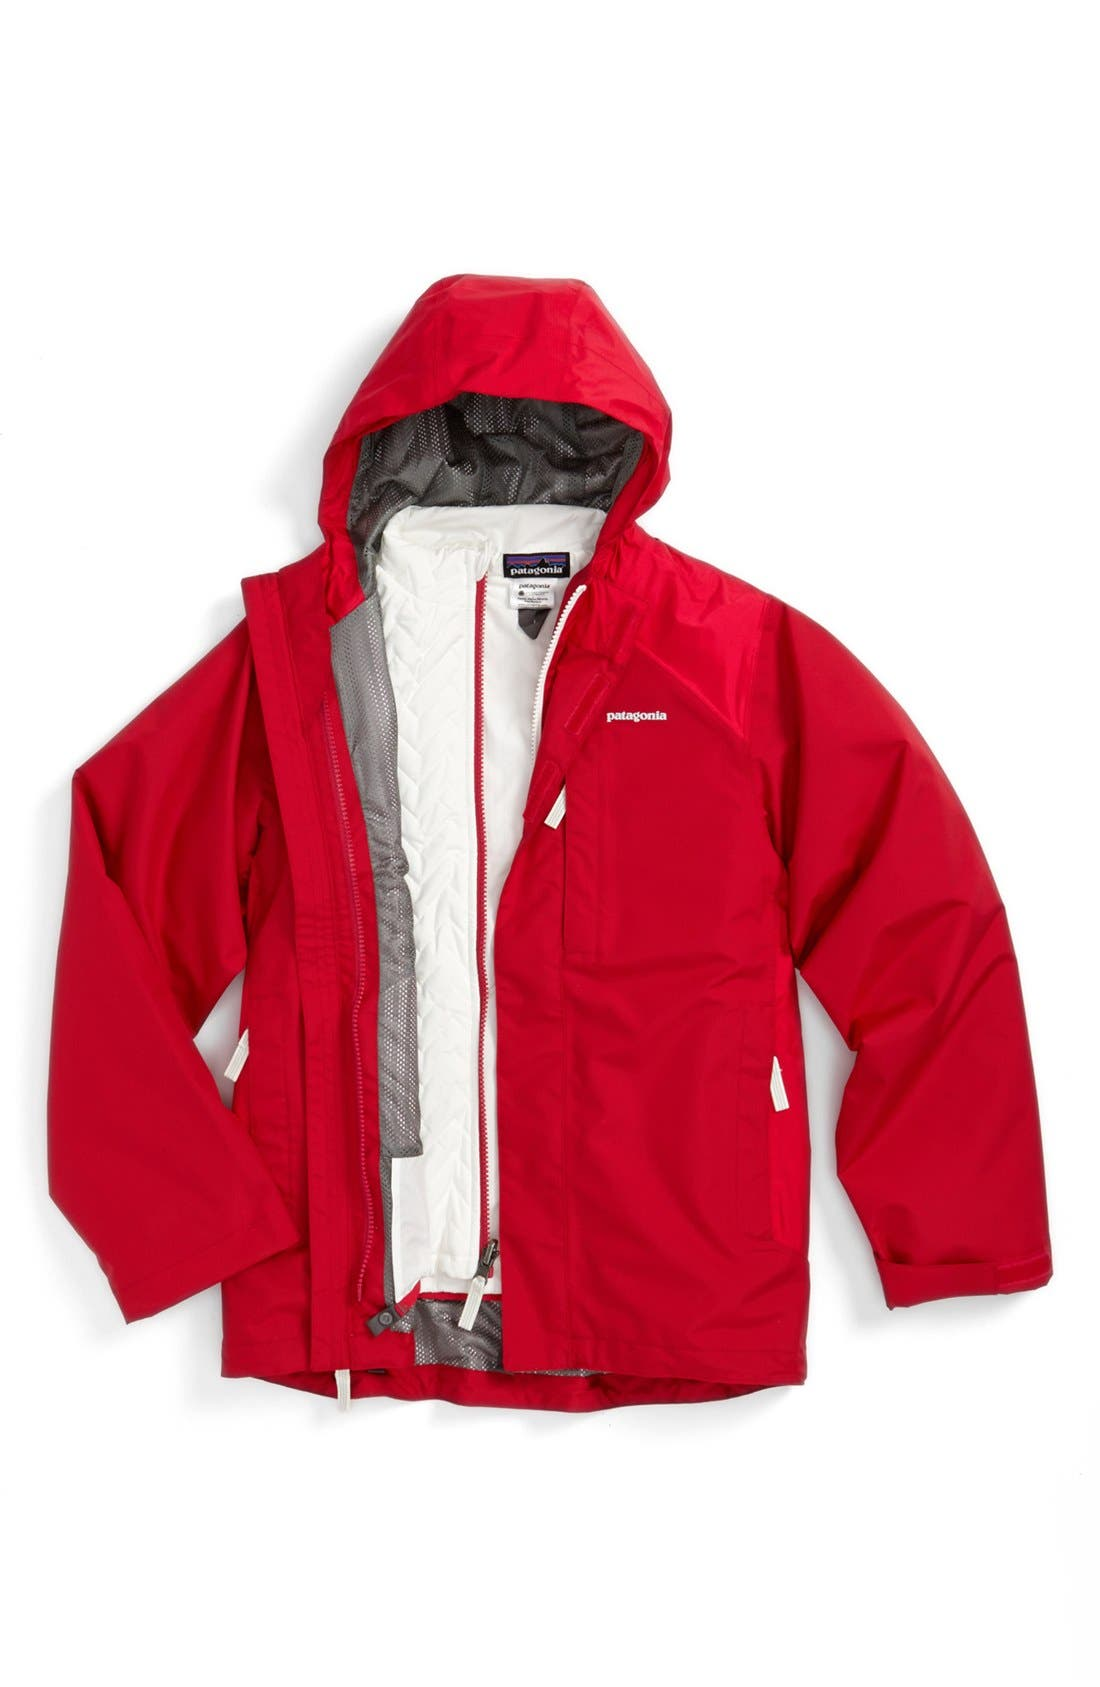 Main Image - Patagonia Waterproof 3-in-1 Snowsport Jacket (Little Girls & Big Girls)